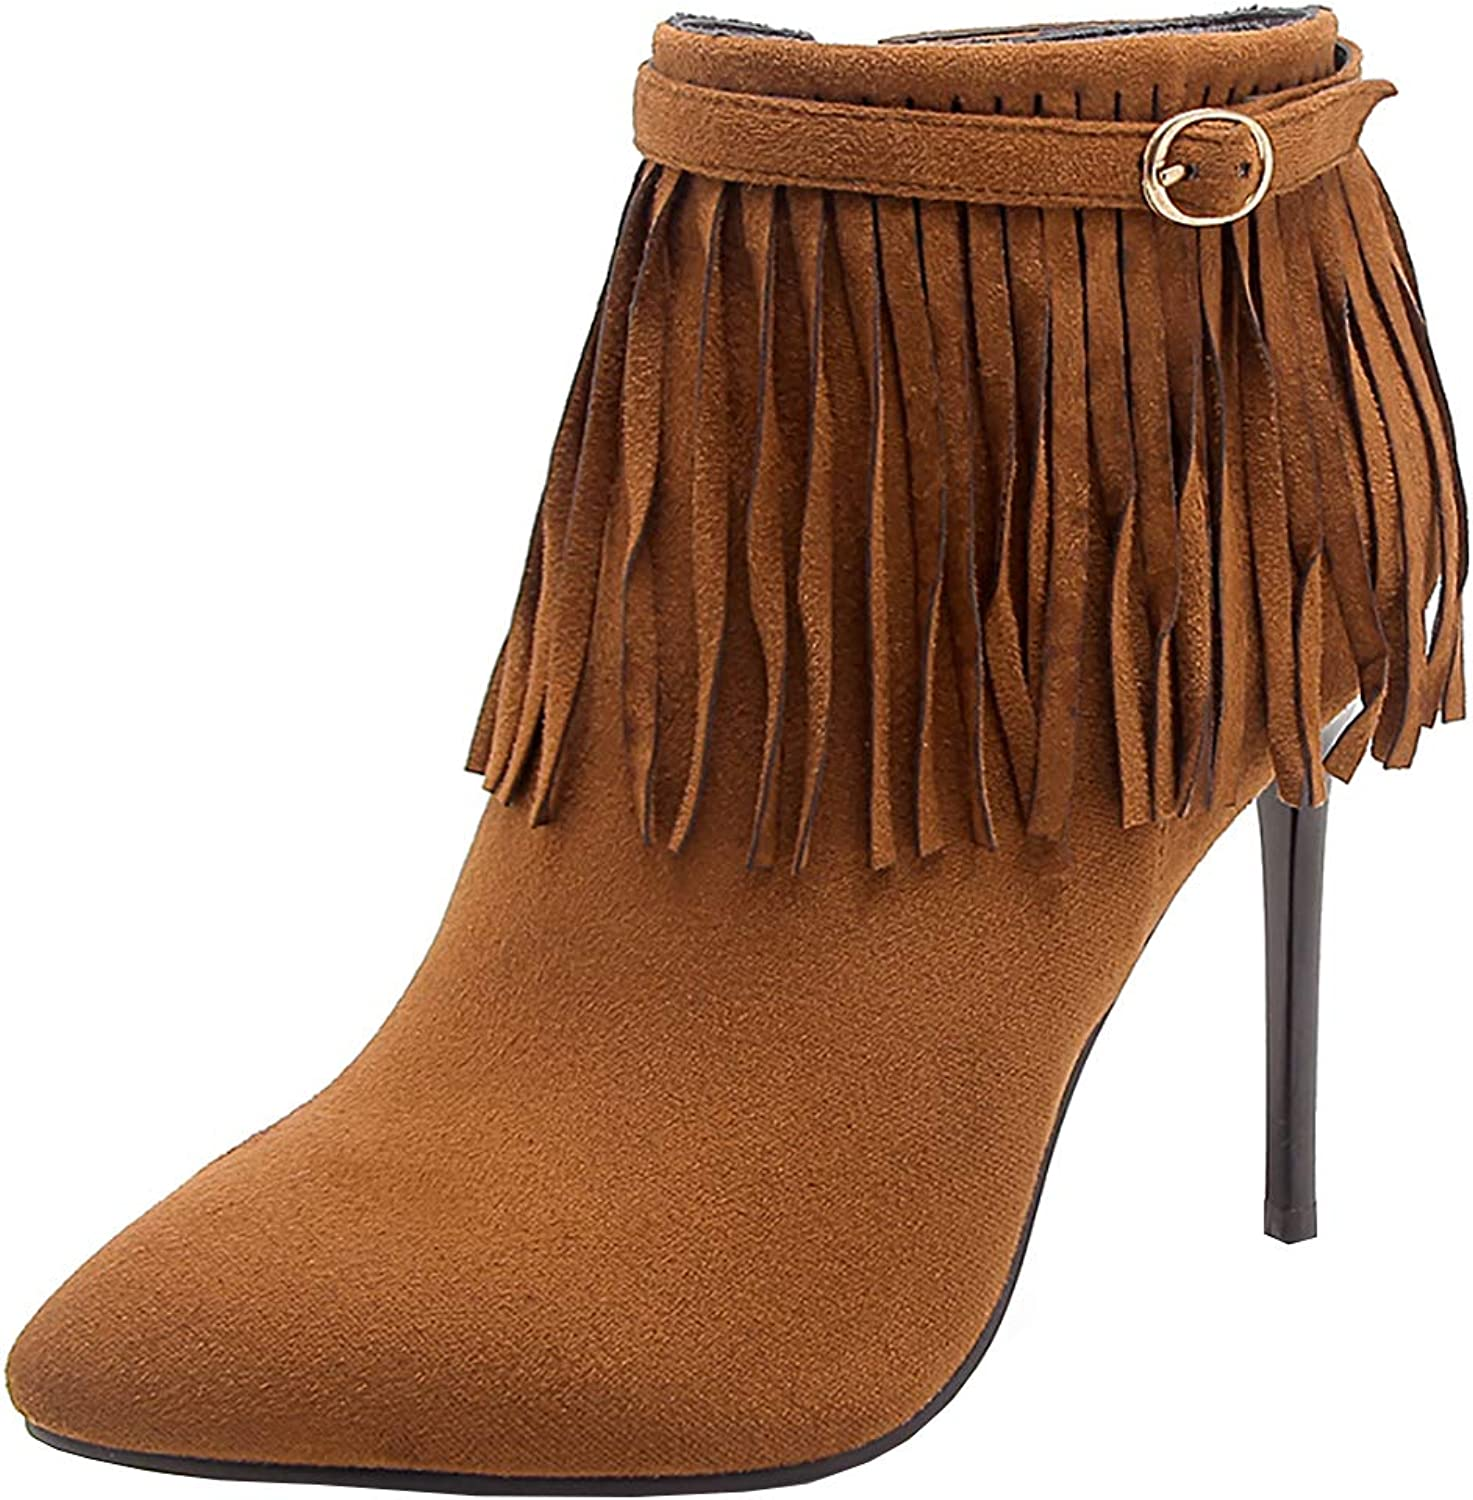 Kikiva Womens Fringe High Heel Stiletto Ankle Boots Pointed Toe Side Zip Booties